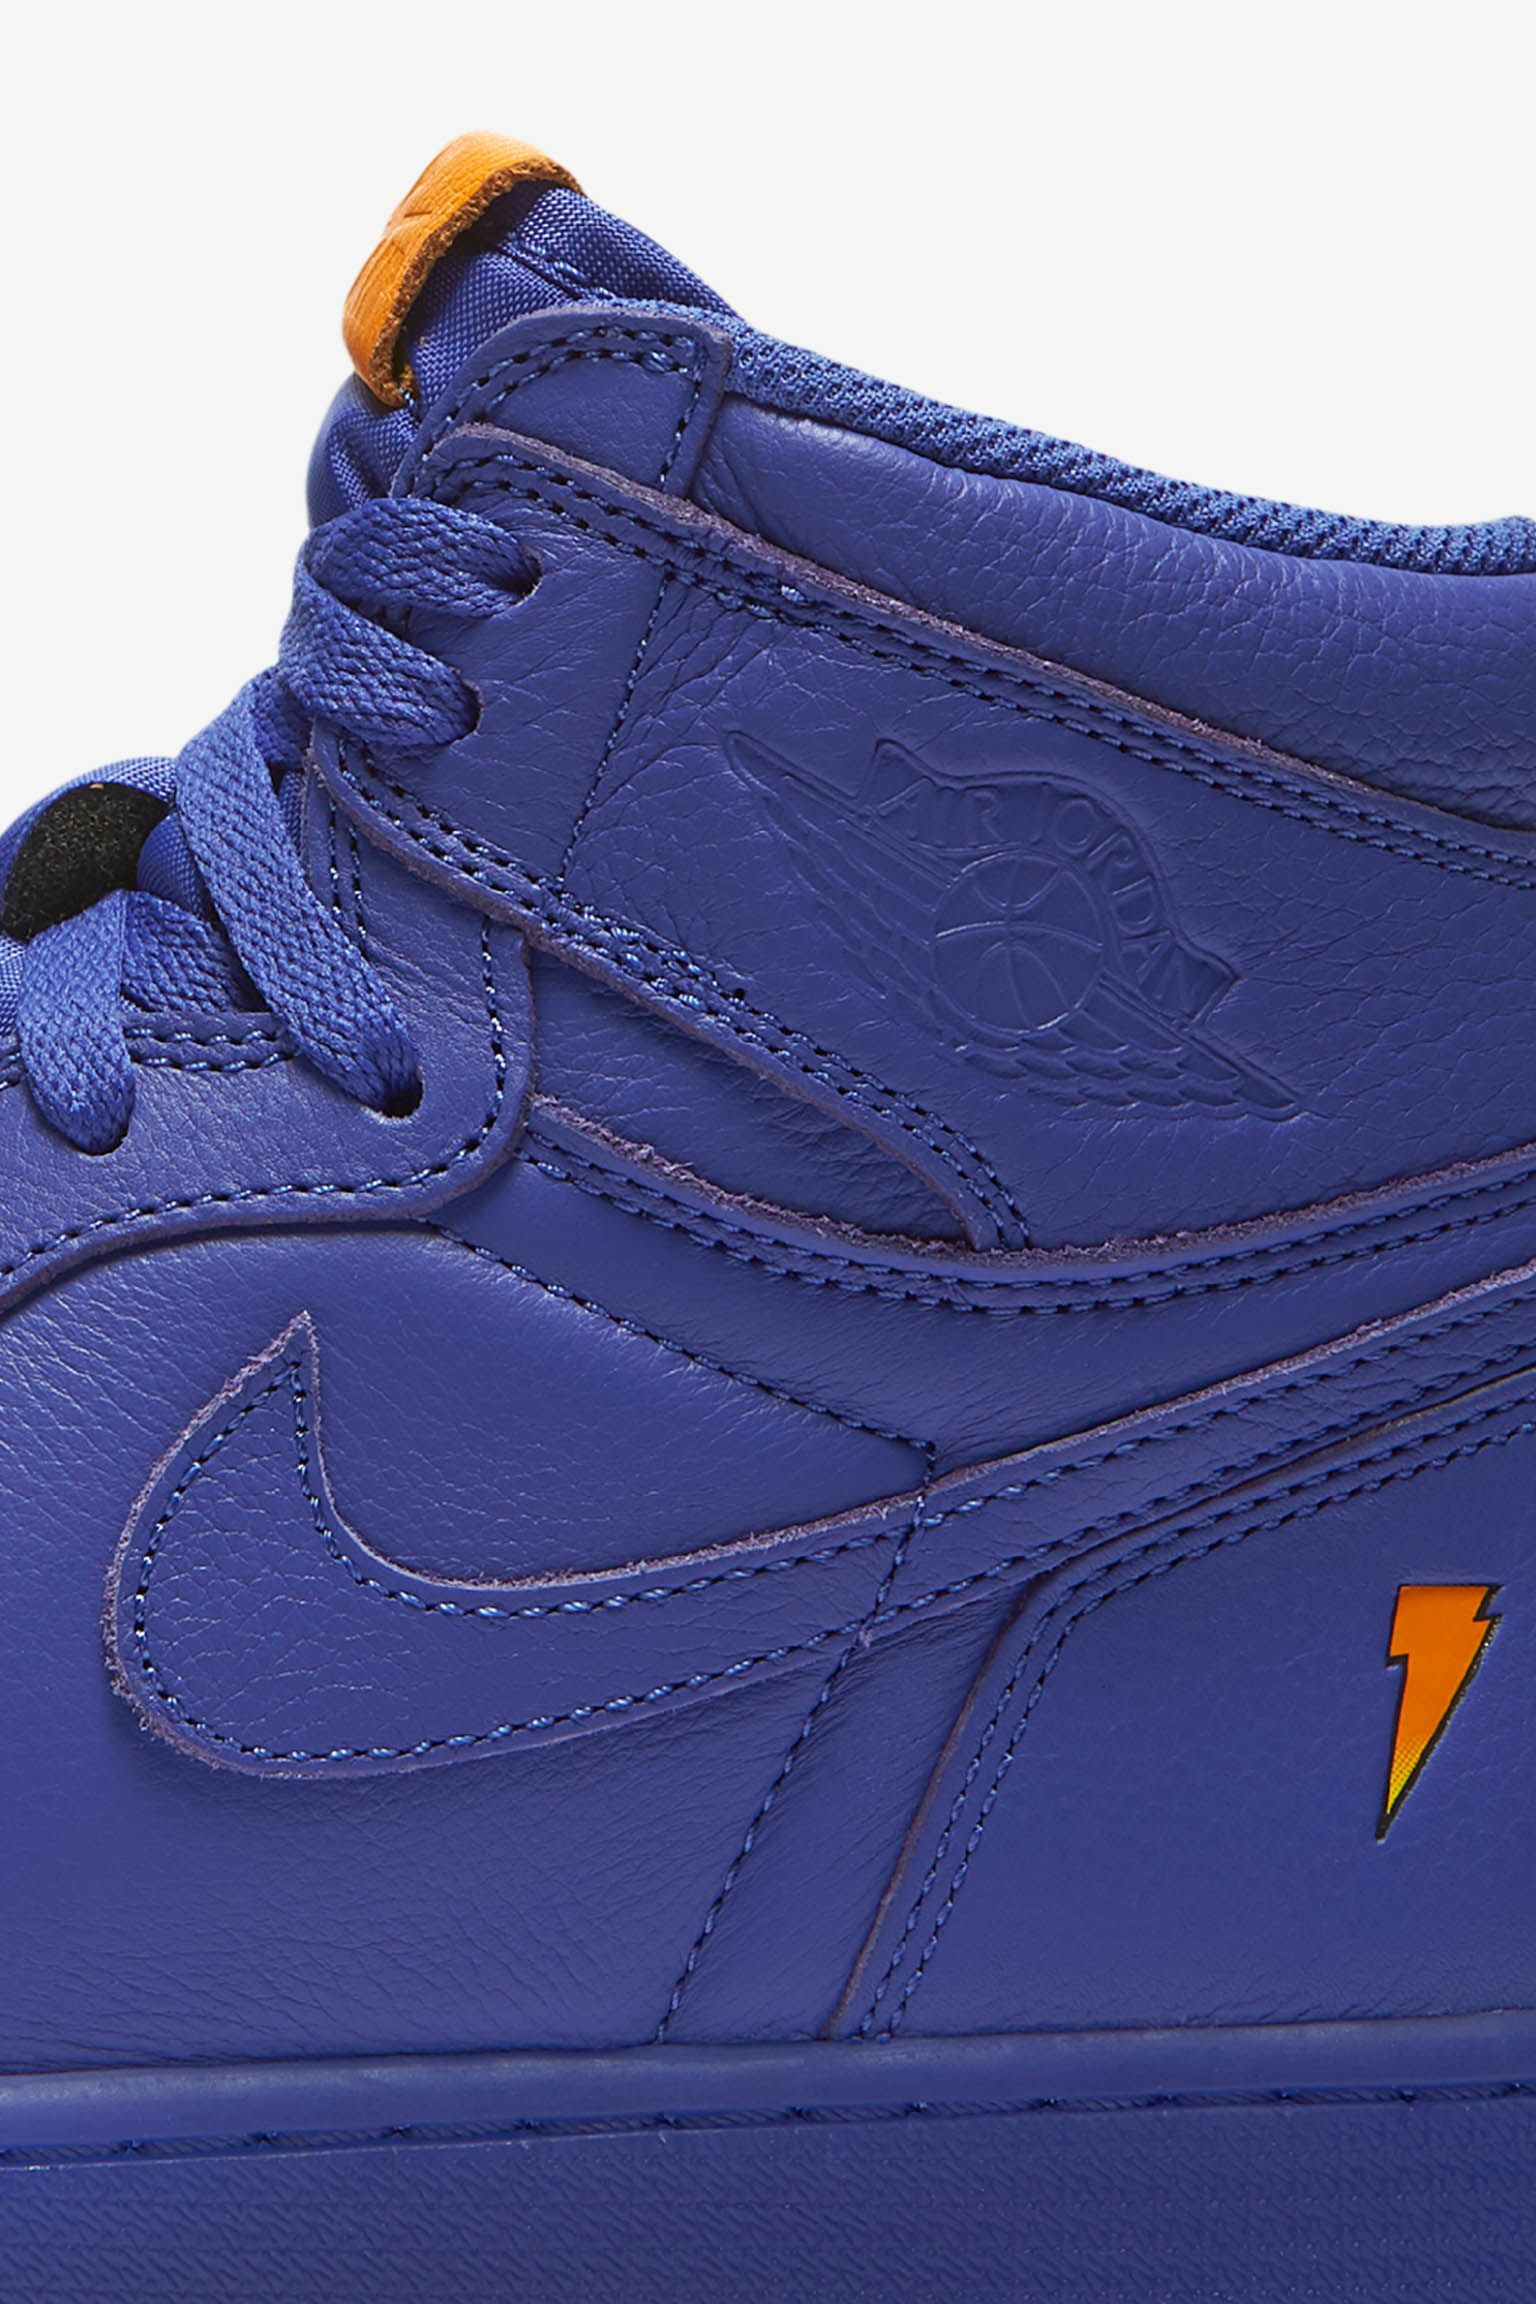 Air Jordan 1 High Gatorade 'Grape' Release Date